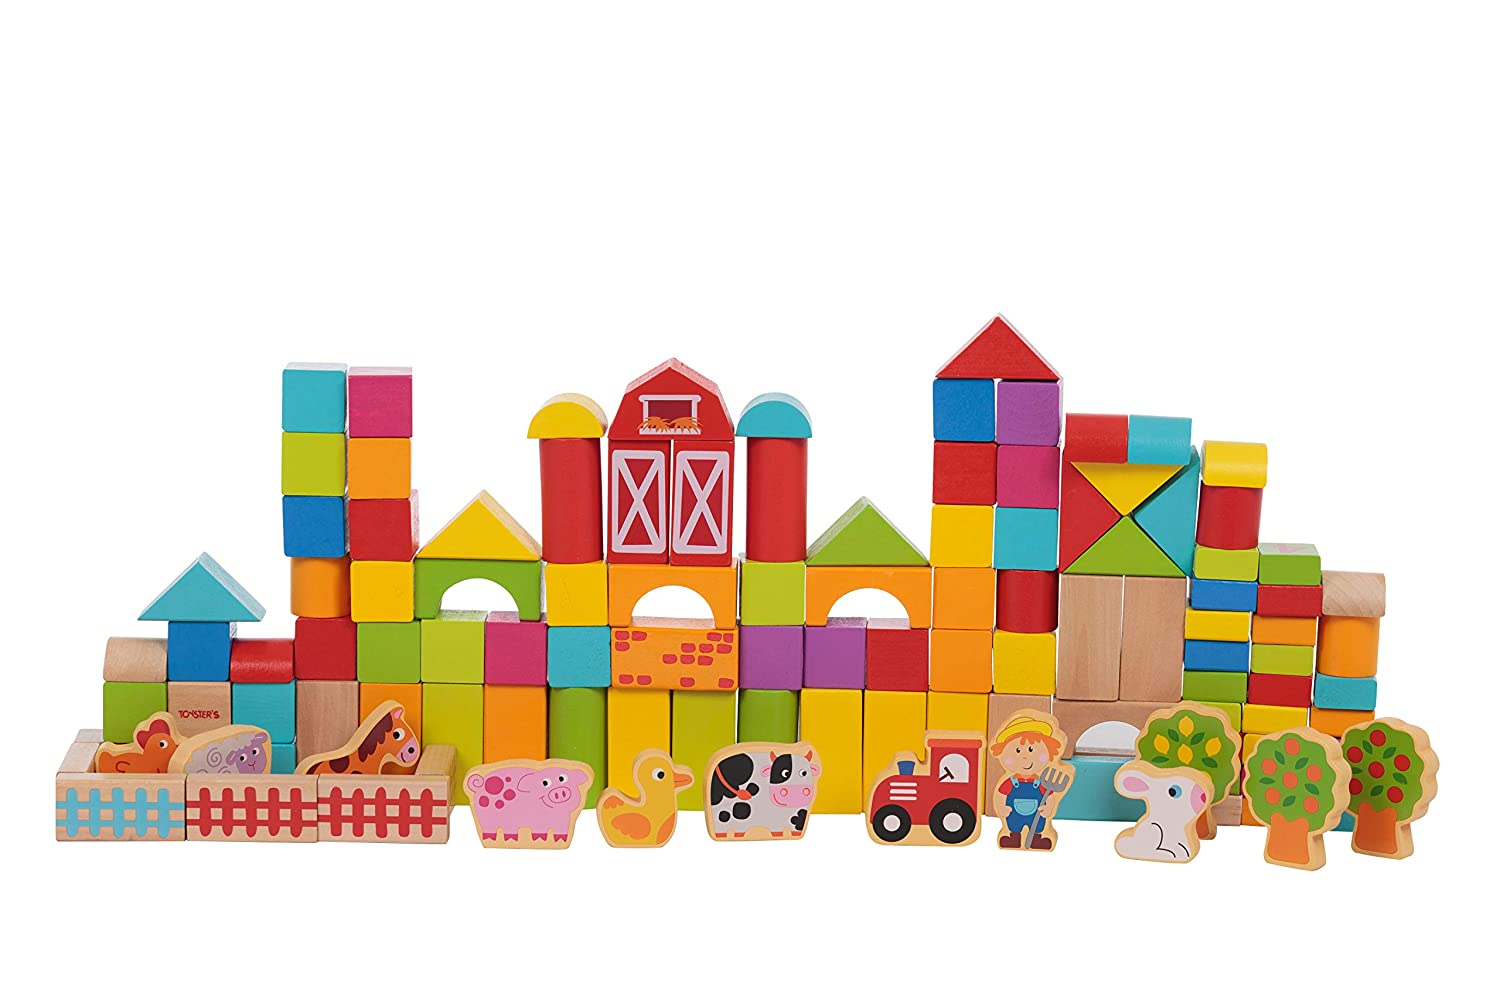 TOYSTERS 128-Piece Wooden Farm Building Blocks Shape Sorting and Recognition Interactive STEM Educational Toy Great for Fine Motor Skills BPA-Free Wood Game ABC Number Block Set for Kids BK663